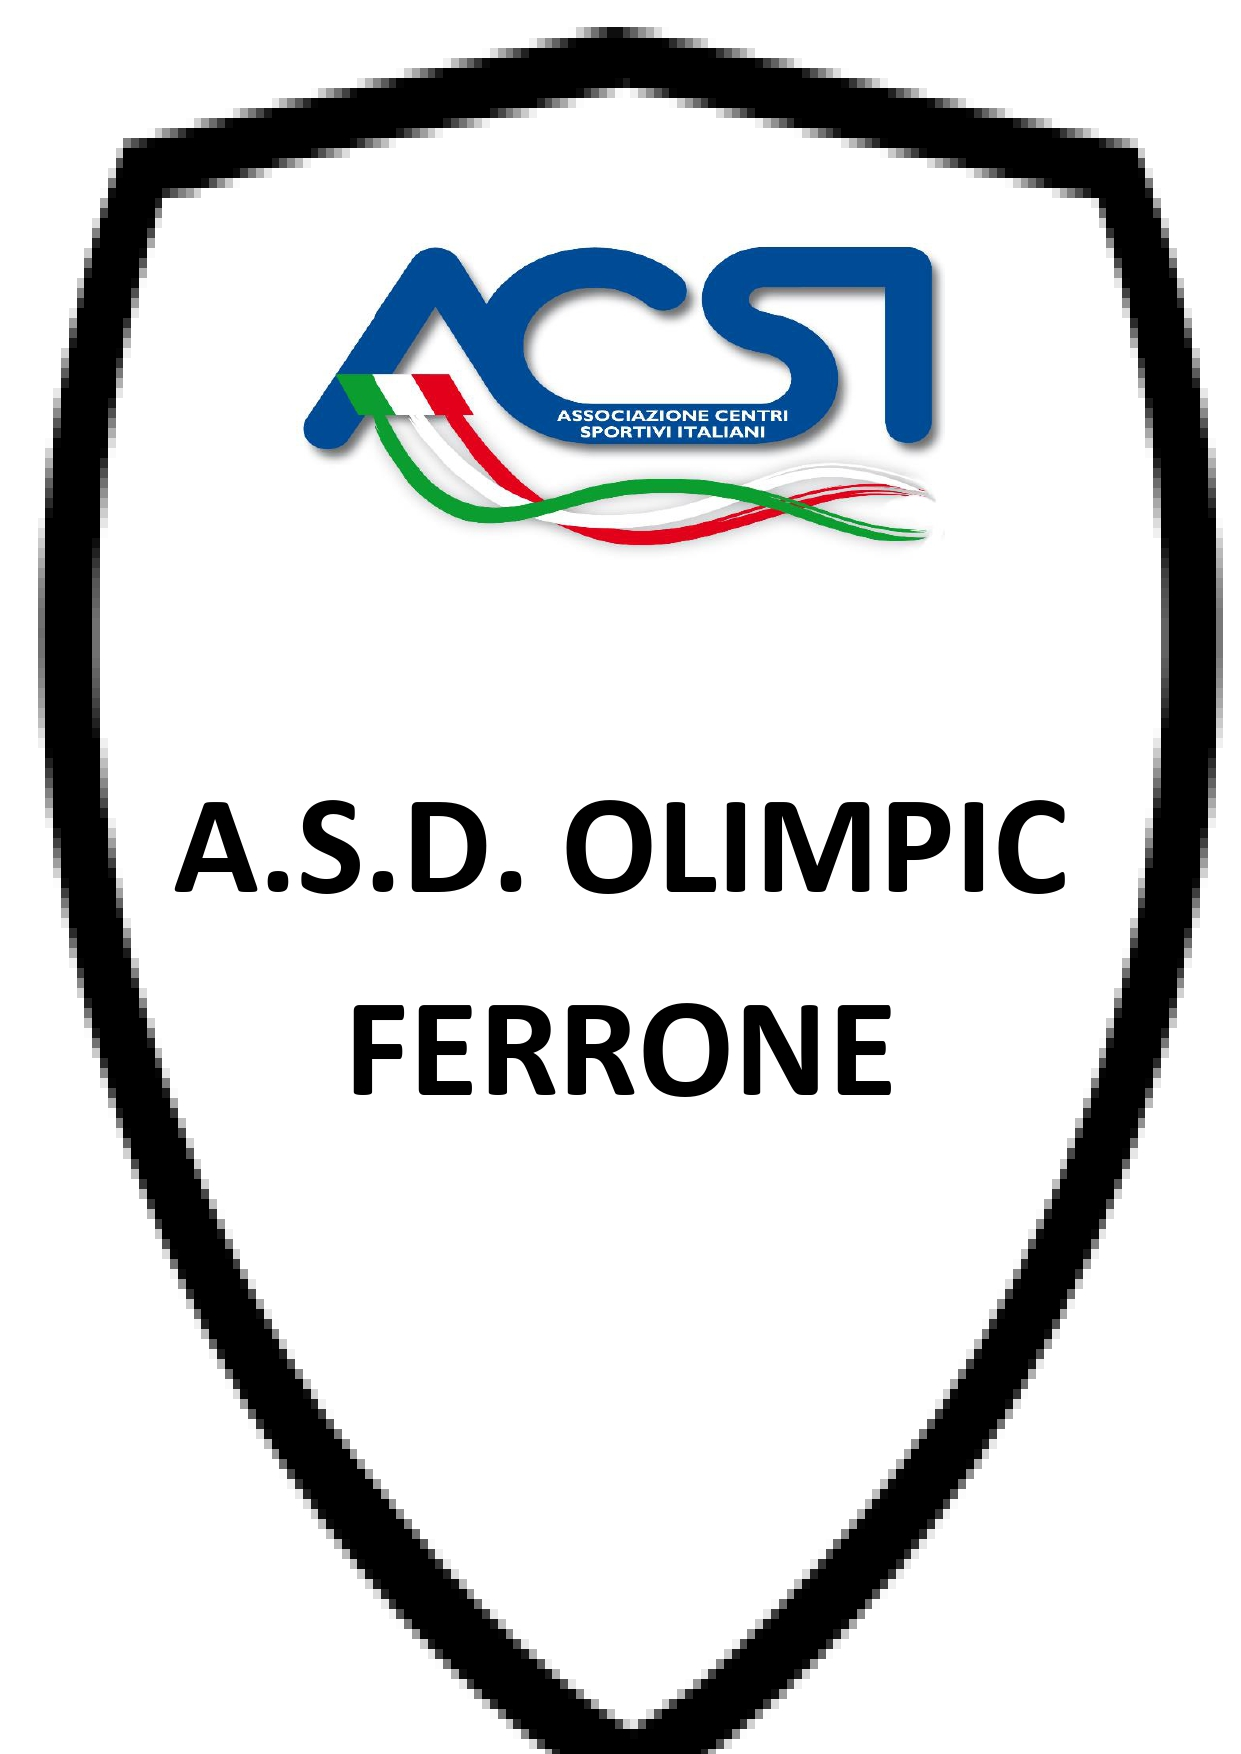 A.S.D. OLIMPIC FERRONE